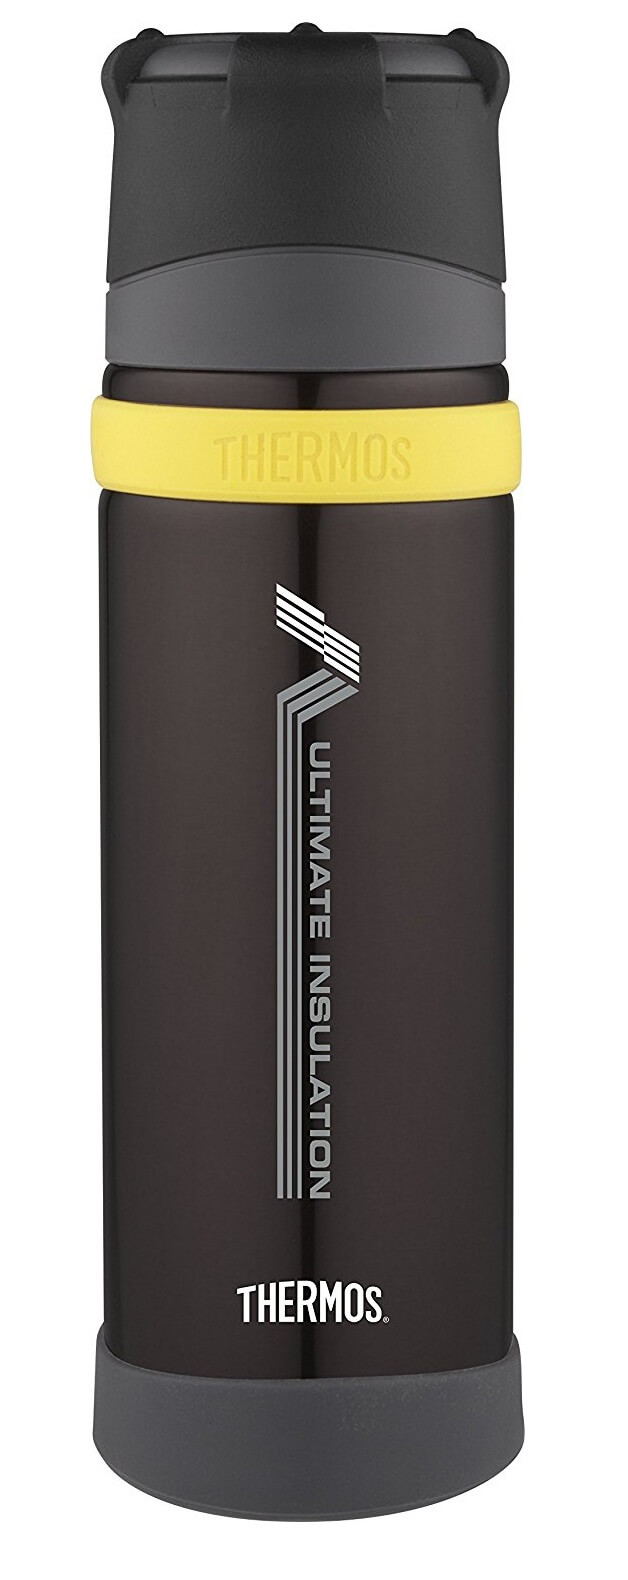 Best Thermos Vacuum Flask - Reviews Of 2017